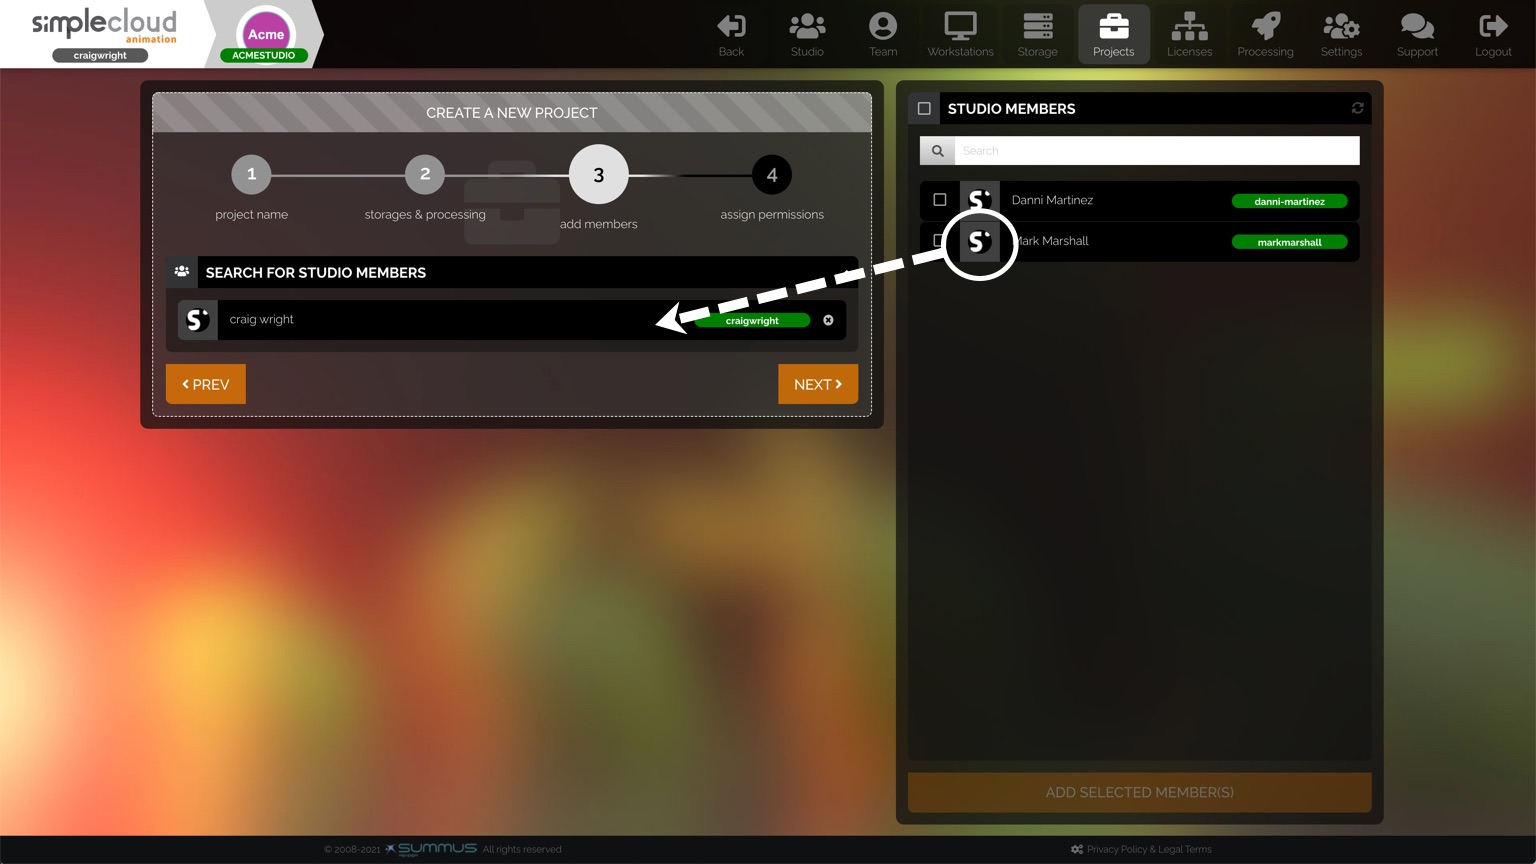 Drag a user into the studio members section to add them to your project.